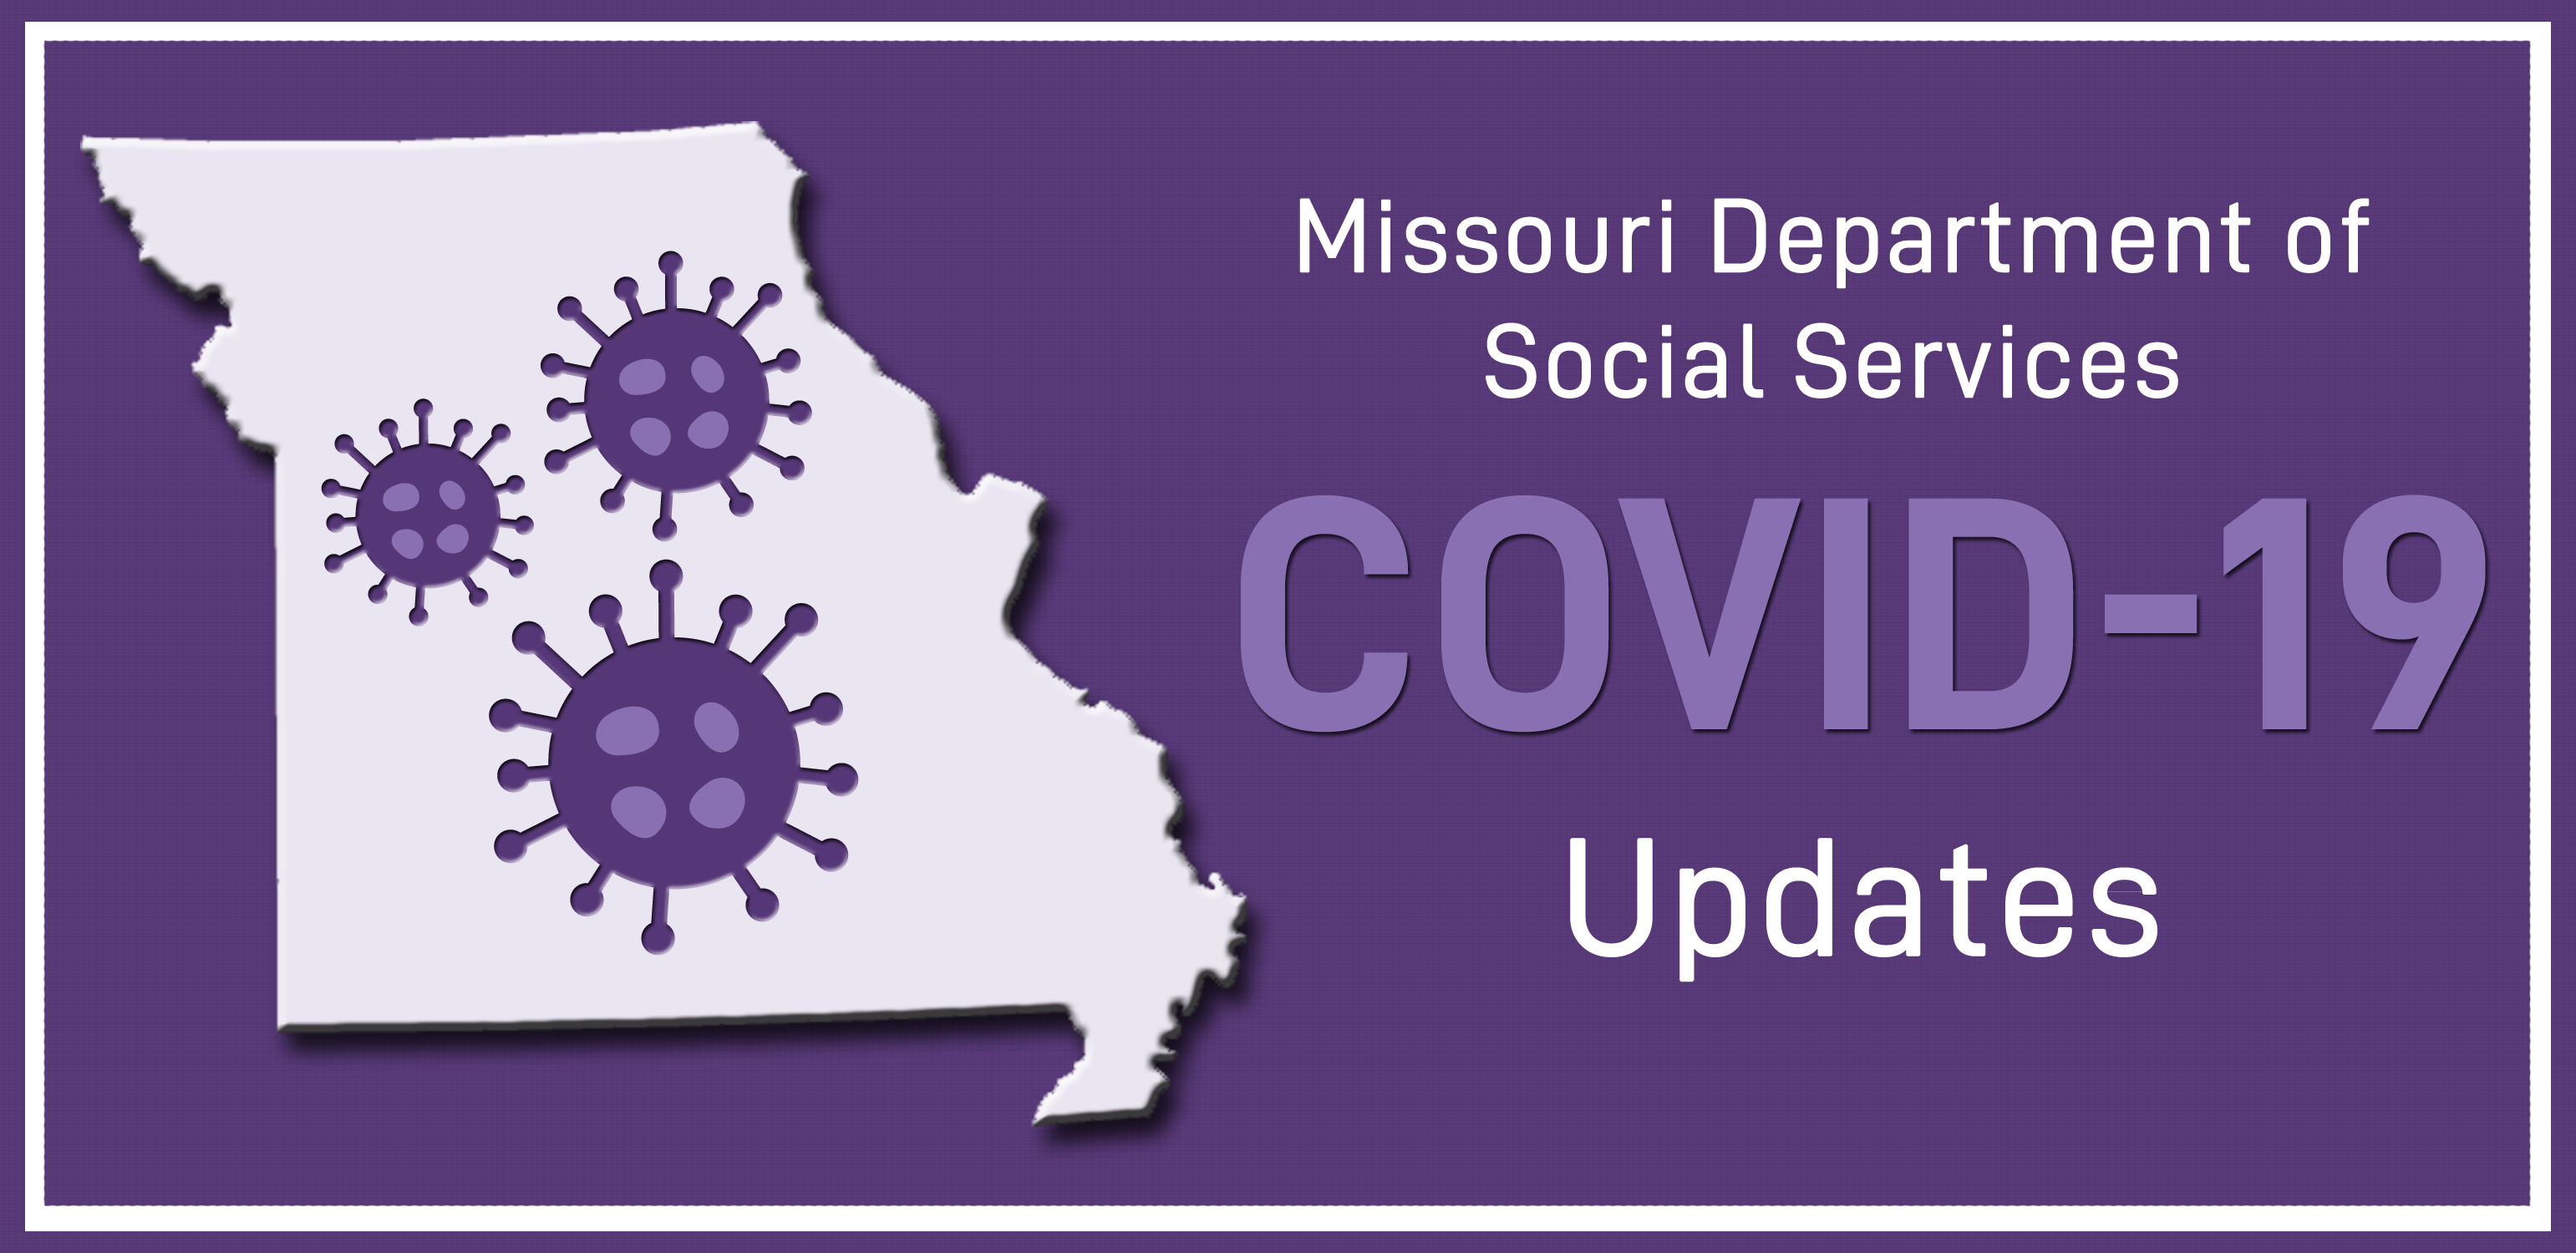 Learn more about the DSS response to the COVID-19 Pandemic.